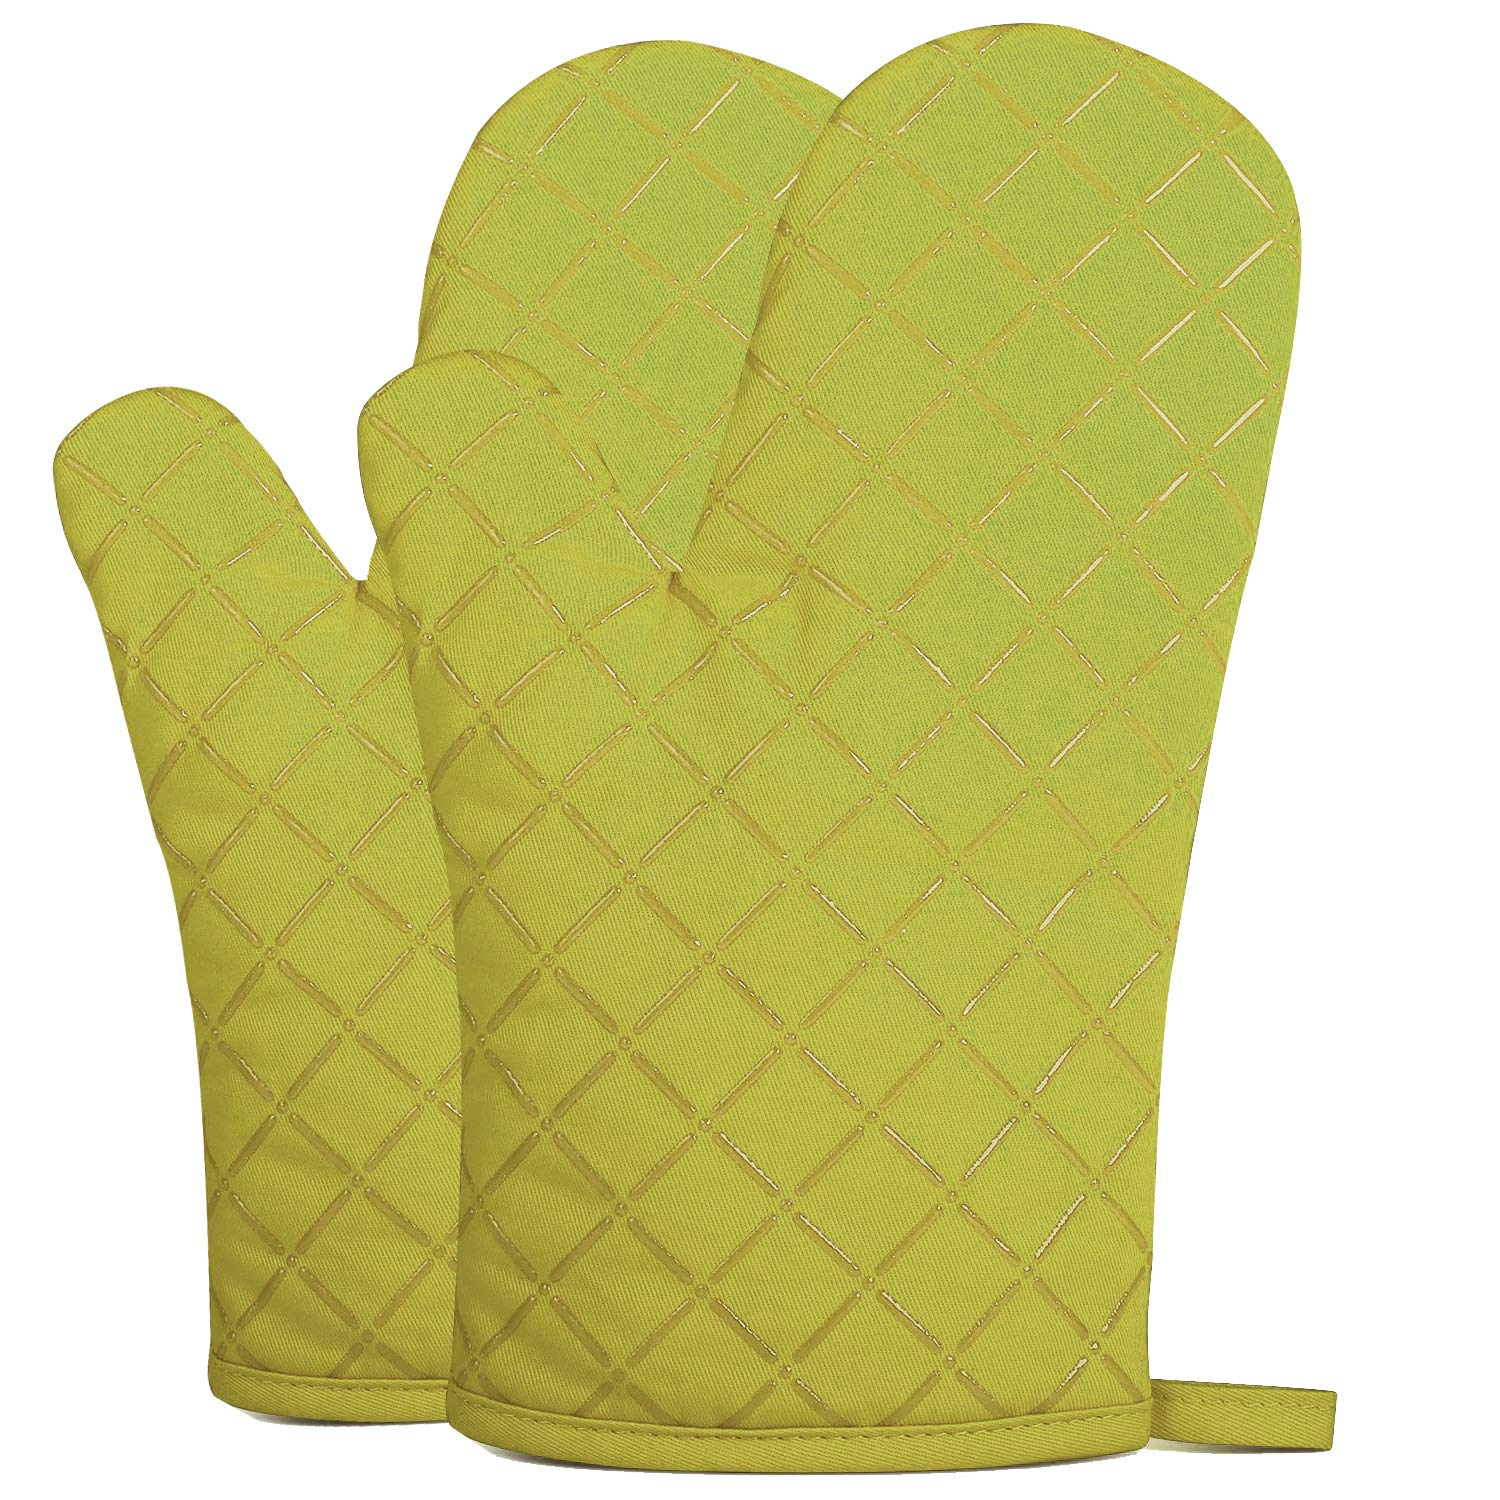 ETECHMART Cotton Oven Mitts with Silicone, 11 Inches Heat Resistant to 425°F, 1 Pair of Machine Washable Microwave Oven Gloves with Non-Slip Grip and Hanging Loop for Kitchen, Cooking, Baking (Green)